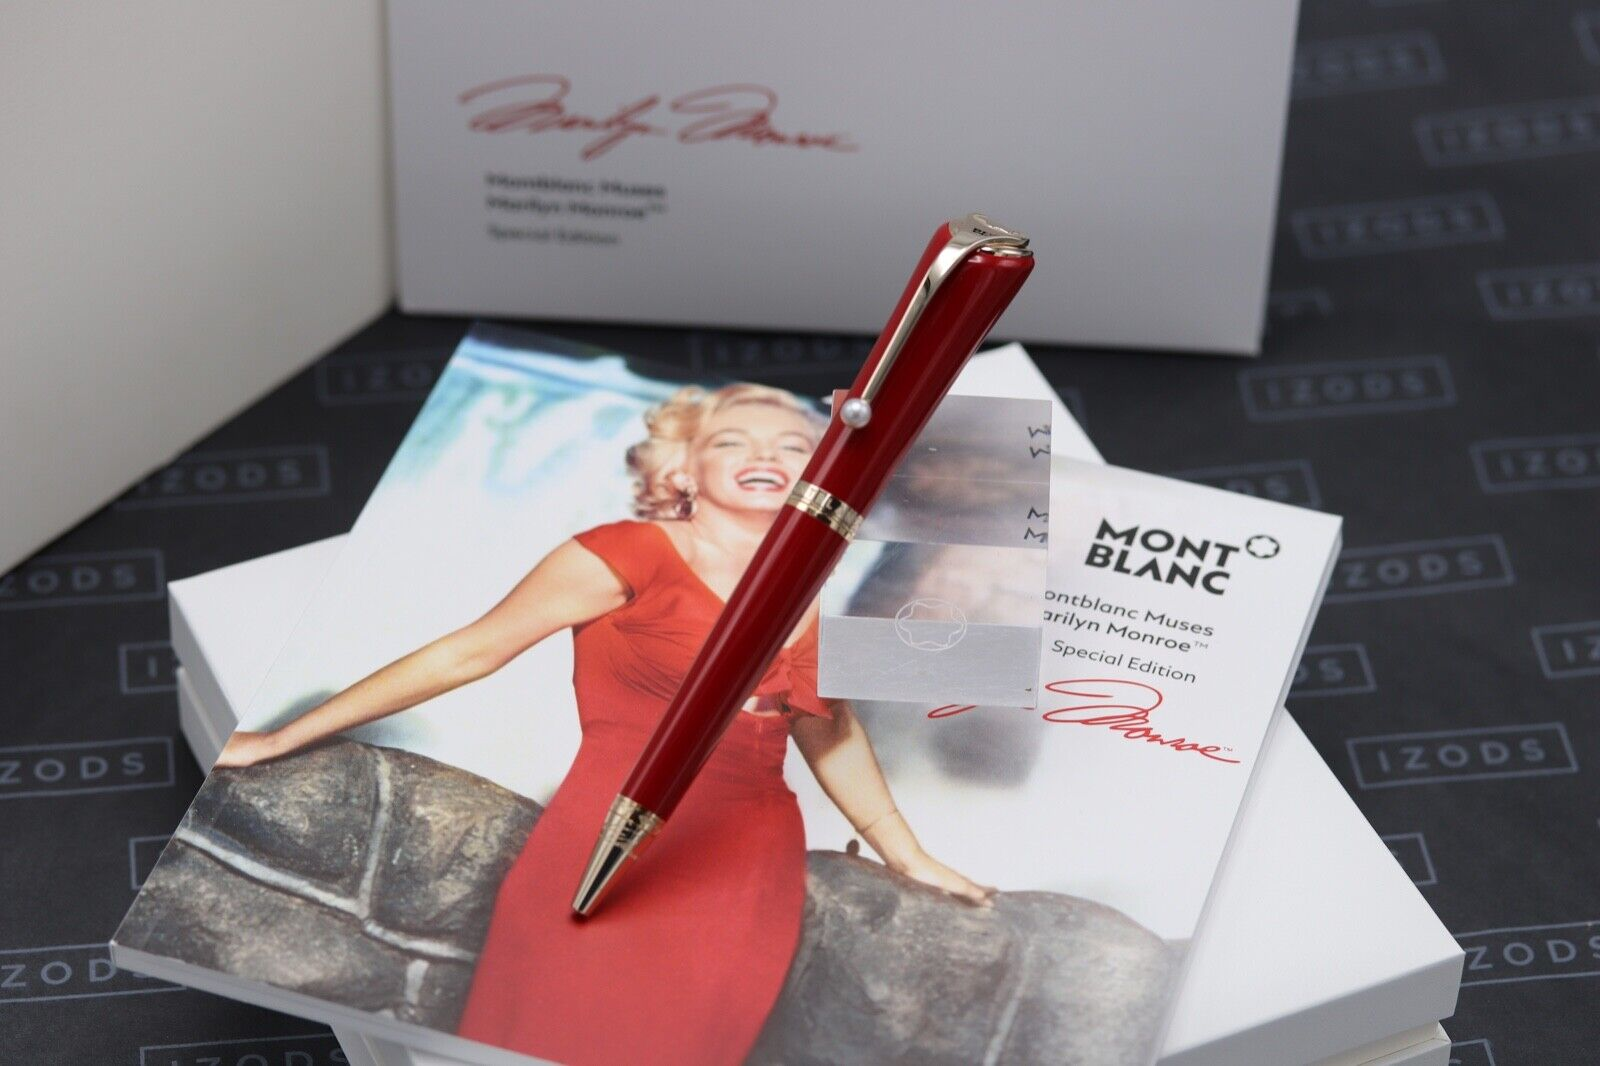 Montblanc Muses Edition Marilyn Monroe Red Ballpoint Pen - NEW MARCH 21